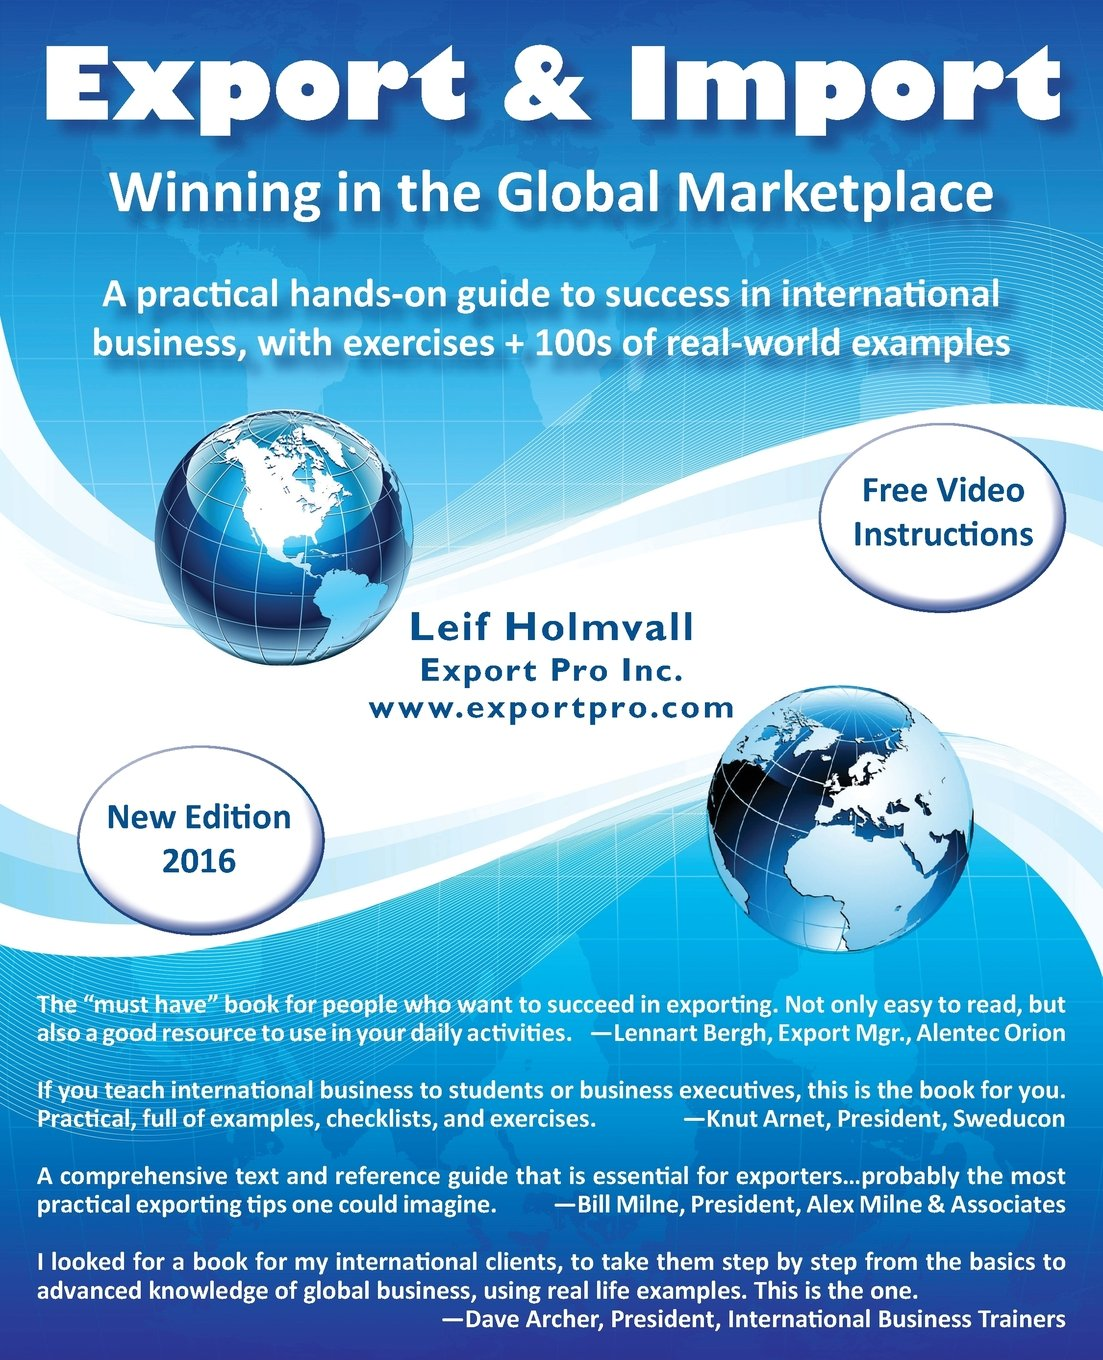 buy export import winning in the global marketplace a buy export import winning in the global marketplace a practical hands on guide to success in international business 100s of real world examples